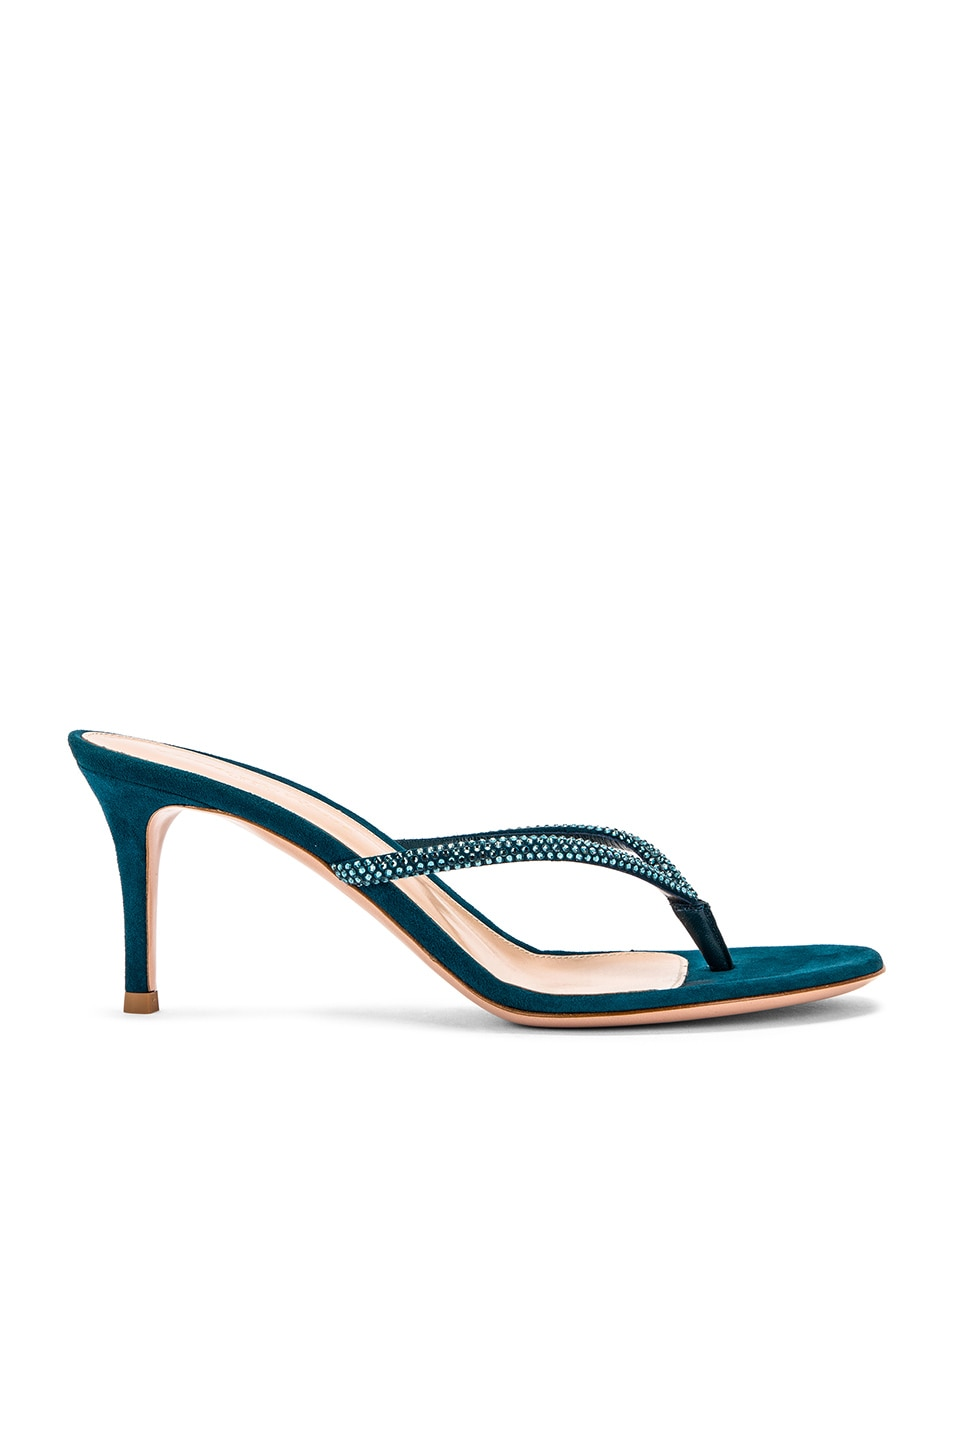 Image 1 of Gianvito Rossi Suede Thong Sandals in Persian